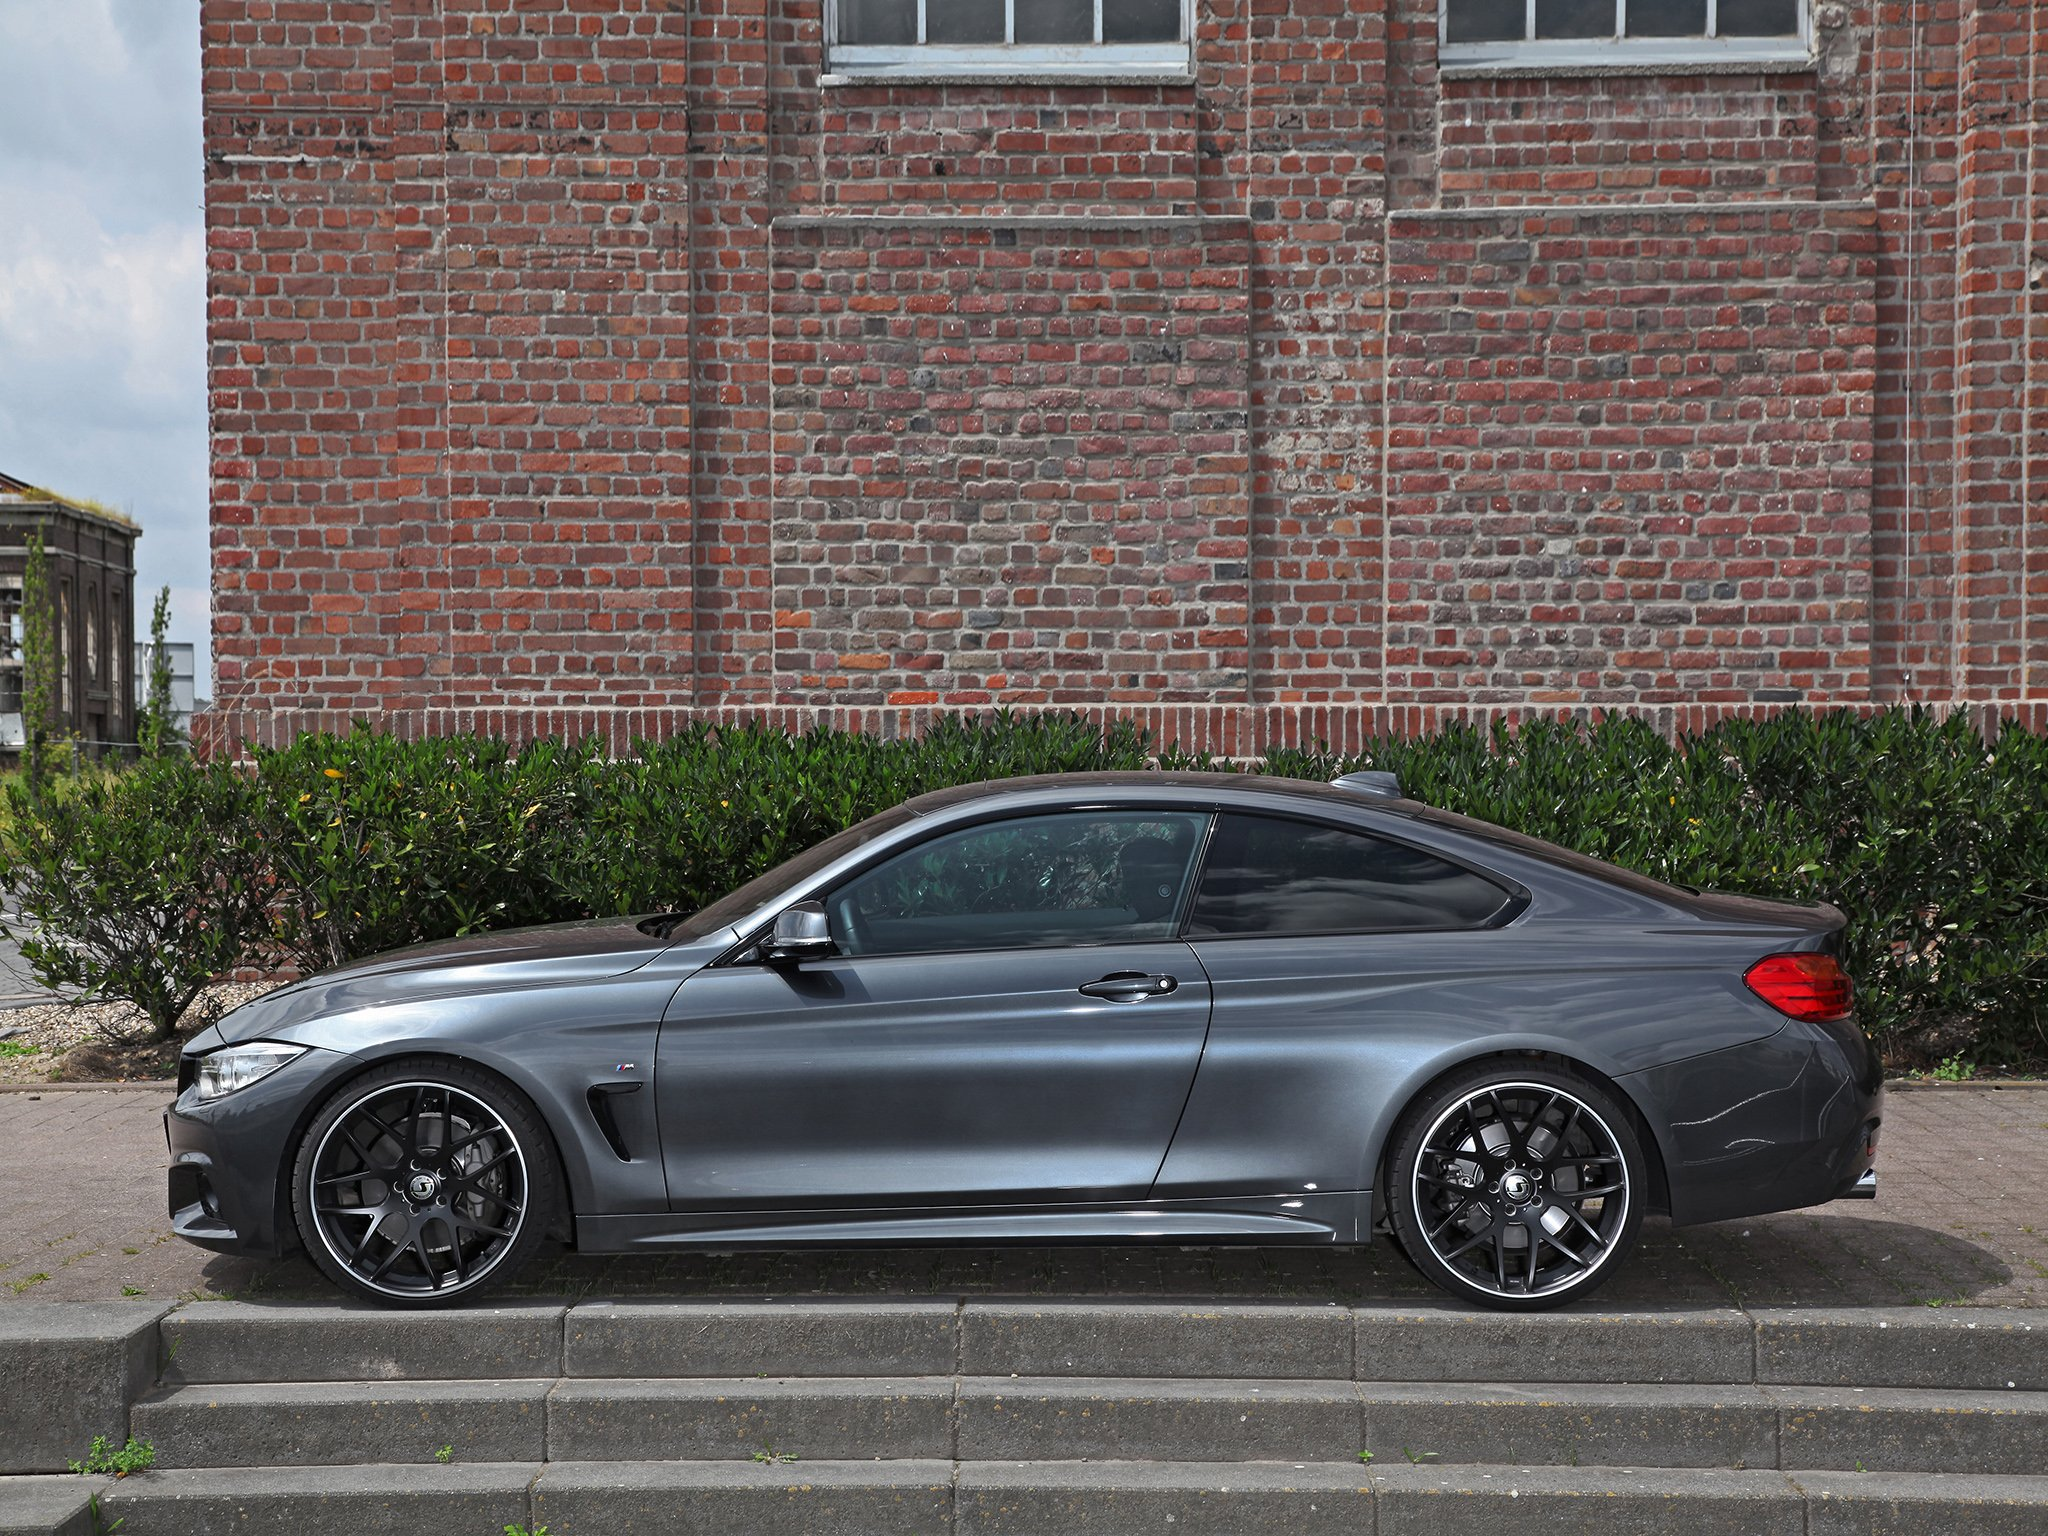 2014_Best_Tuning_BMW_435i_xDrive_Coupe_M_Sport_Package__F32__tuning_e_2048x1536.jpg